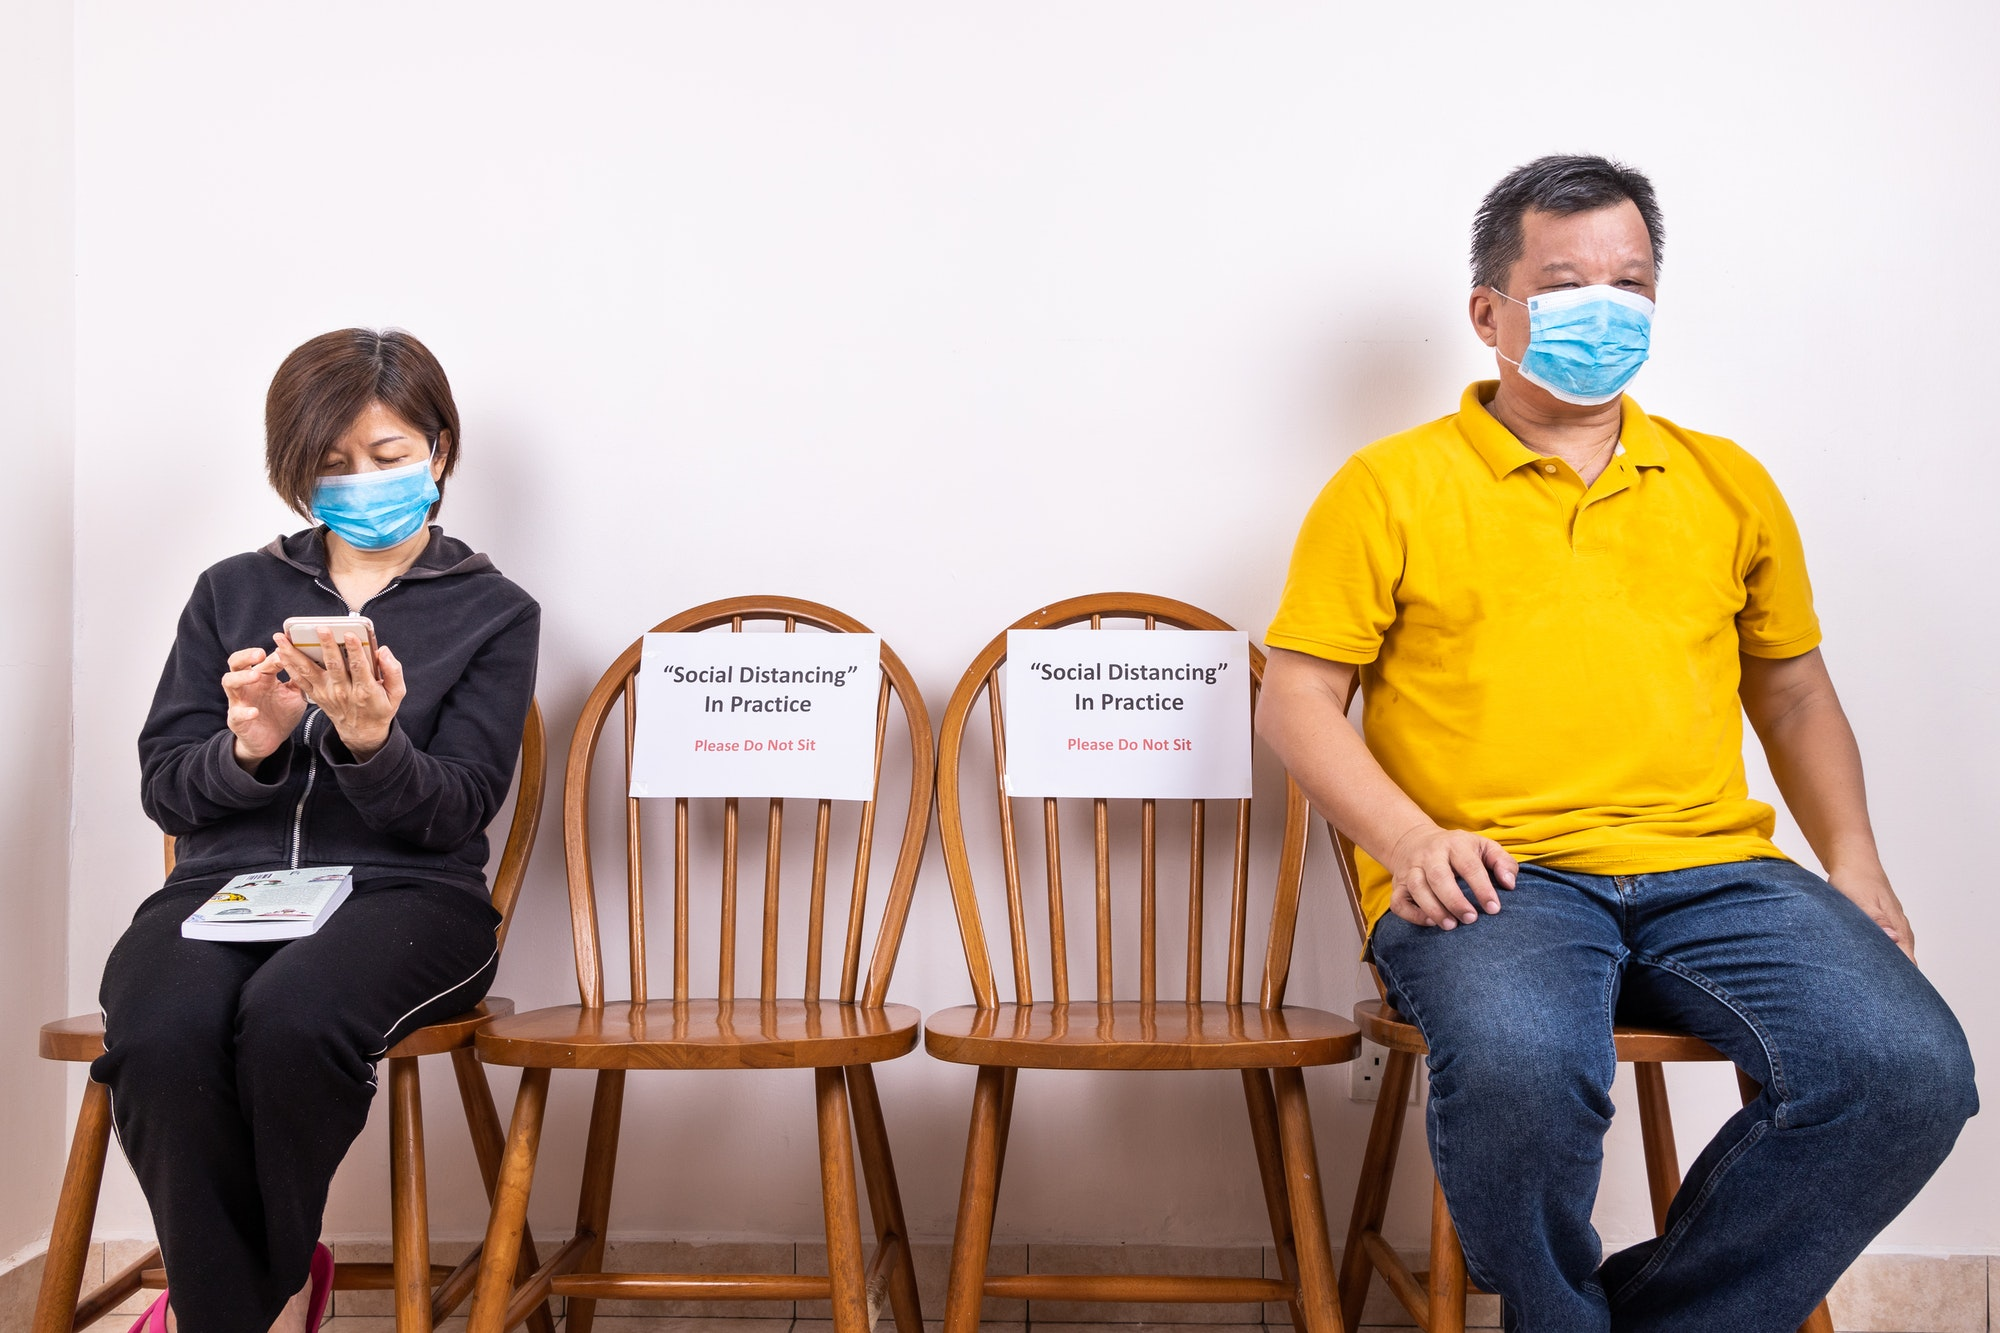 People with face mask seated in-between two chairs with Social Distancing, Do Not Sit signage.